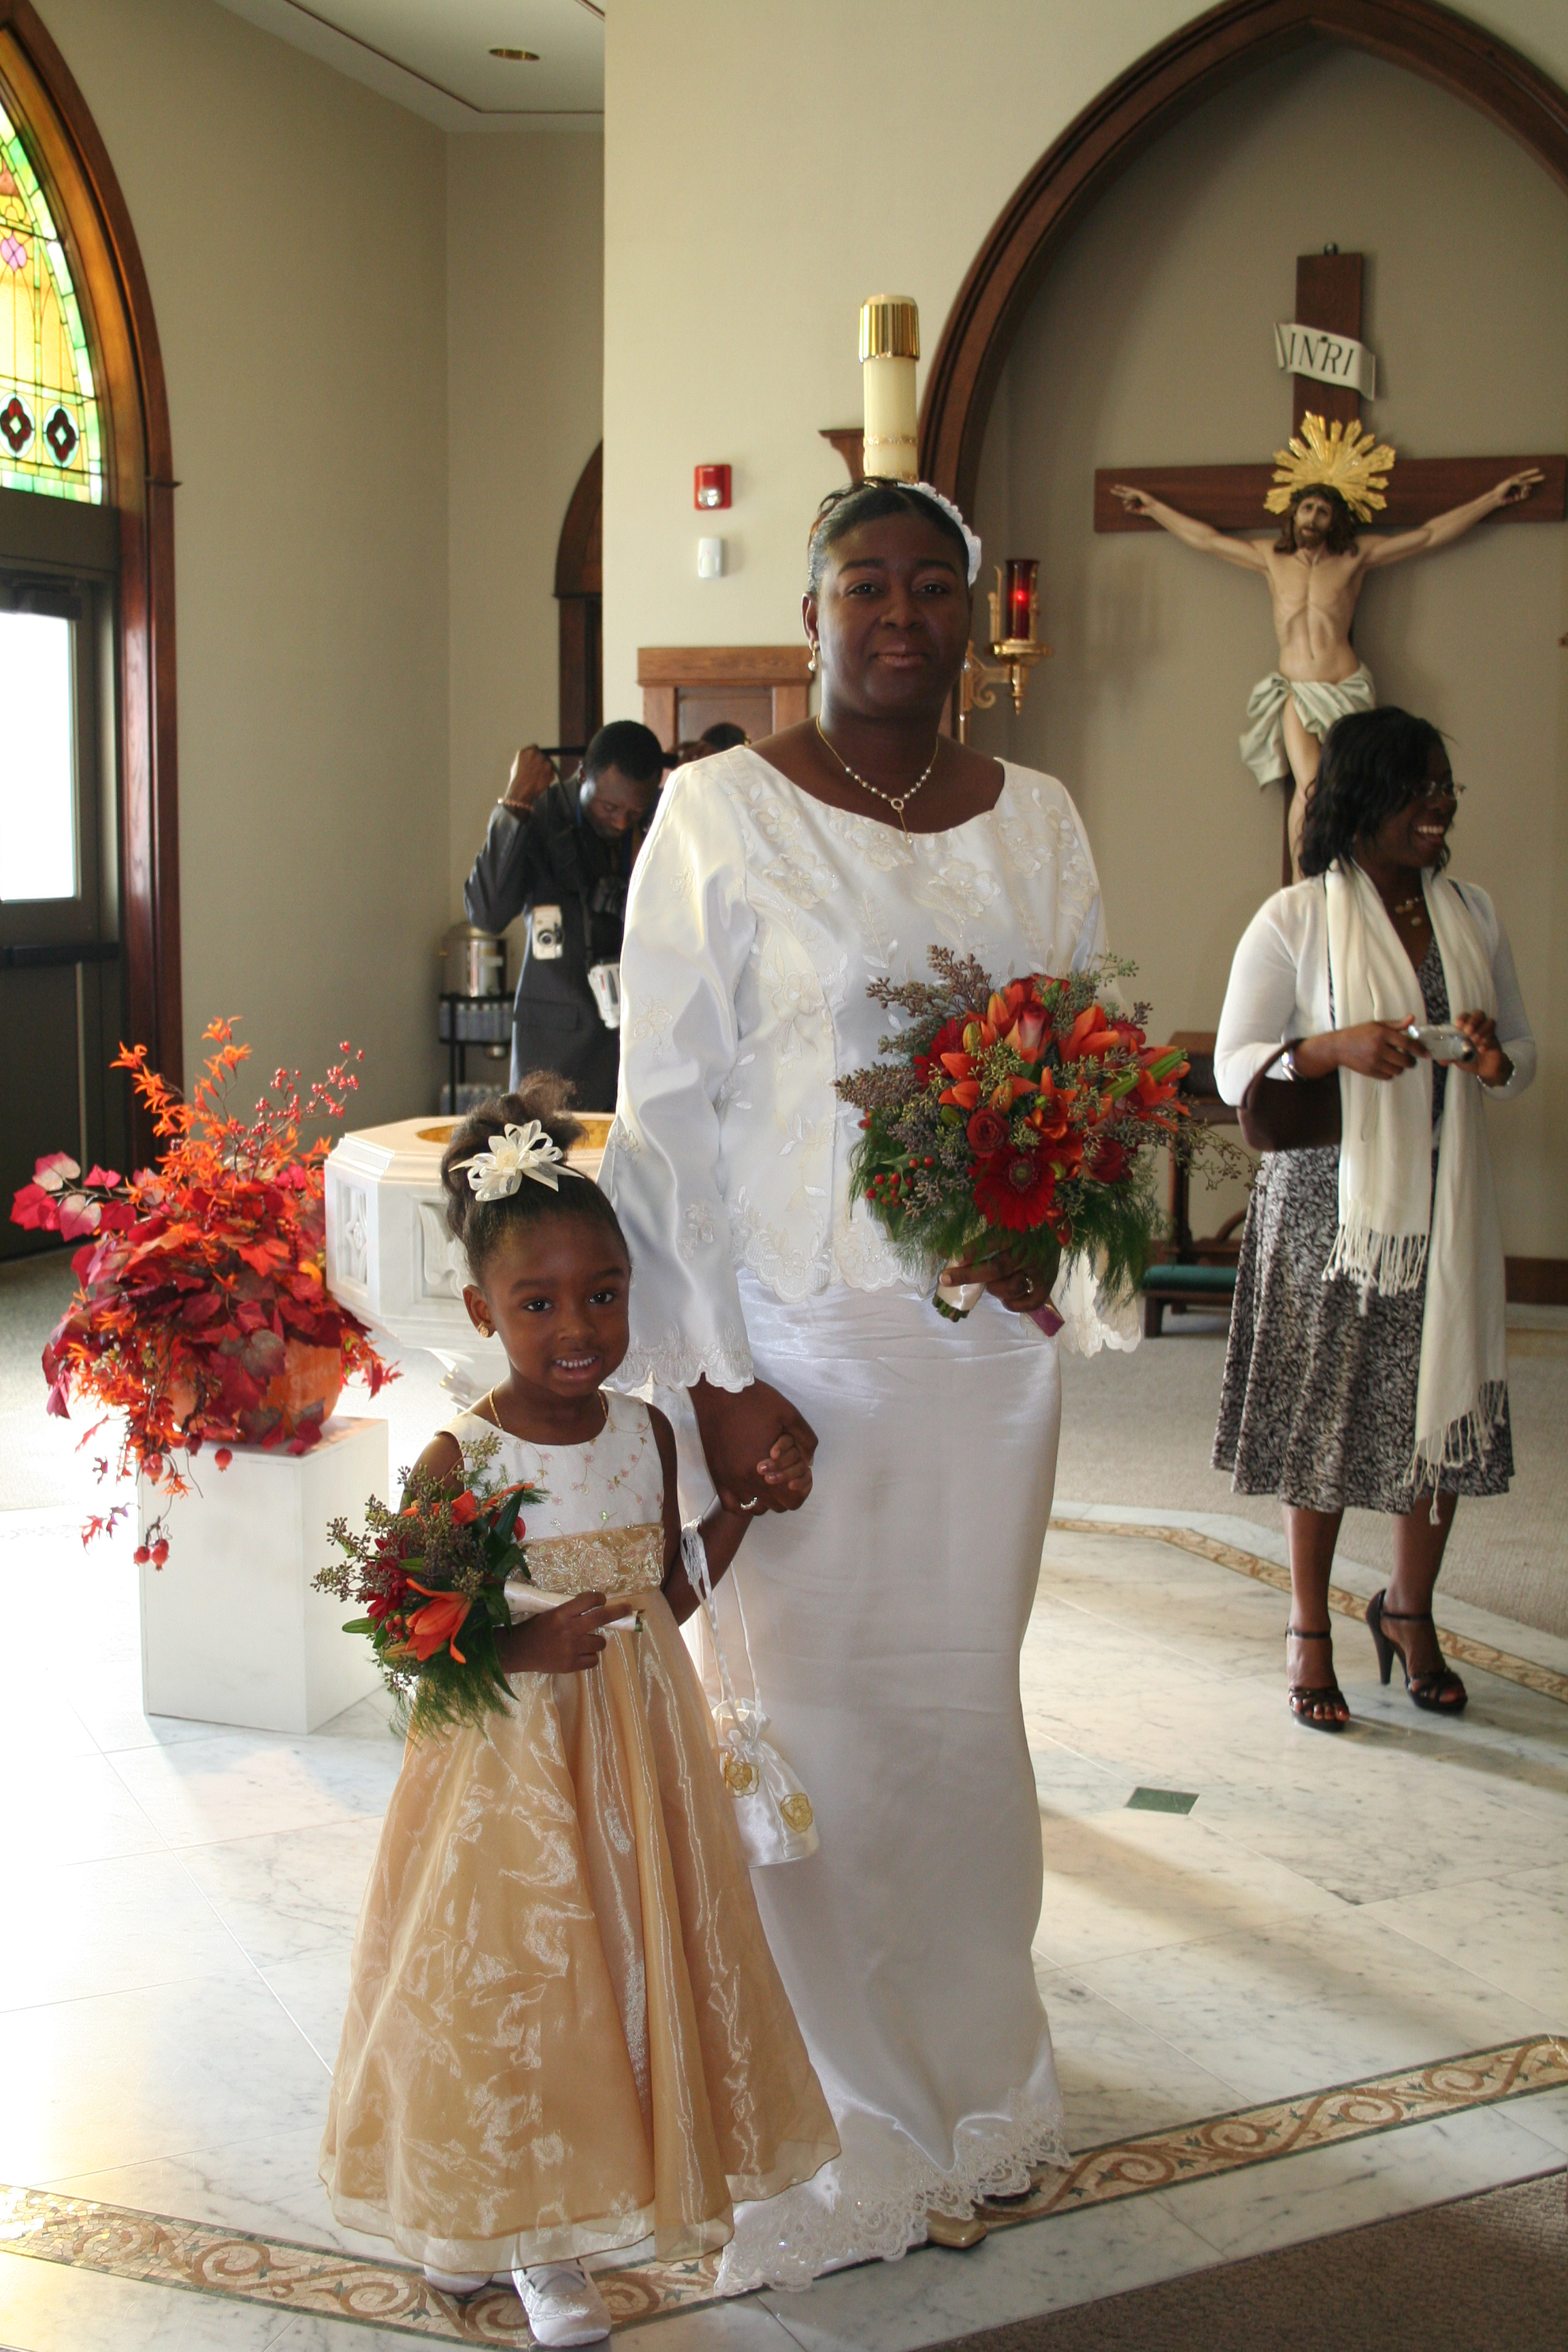 Bride and her daughter on her wedding day